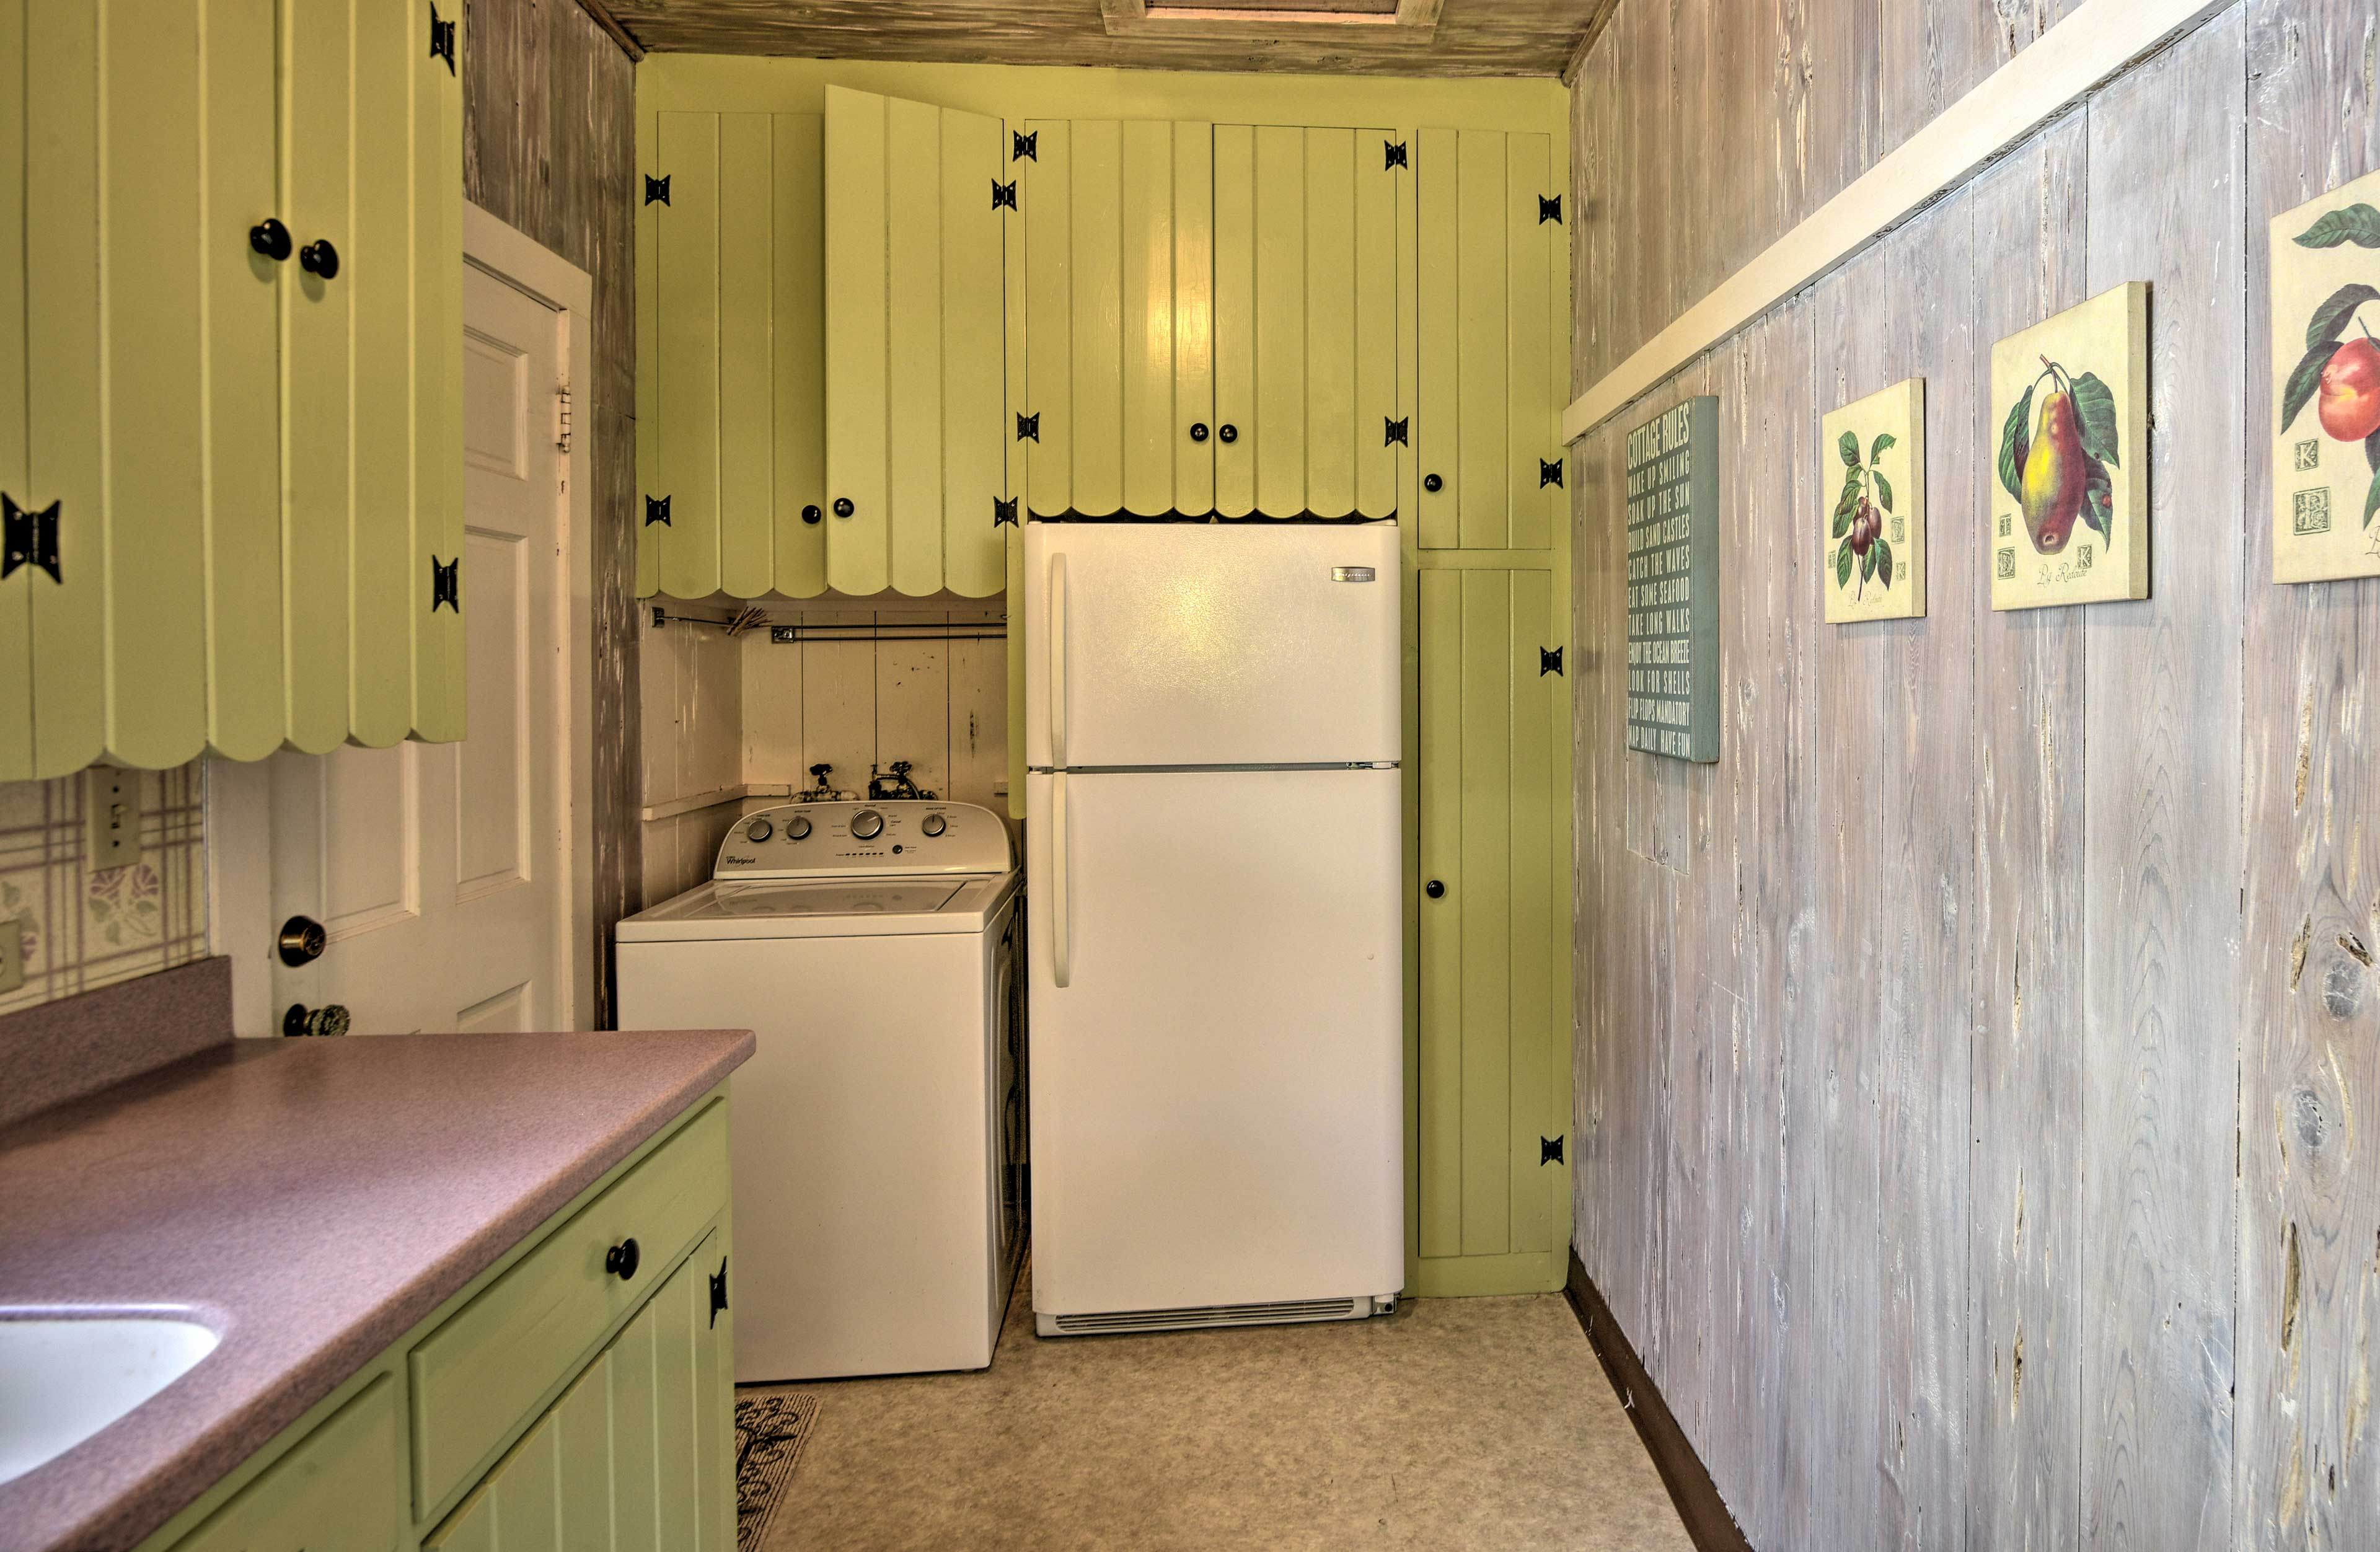 Cheery green cabinetry completes the kitchen.